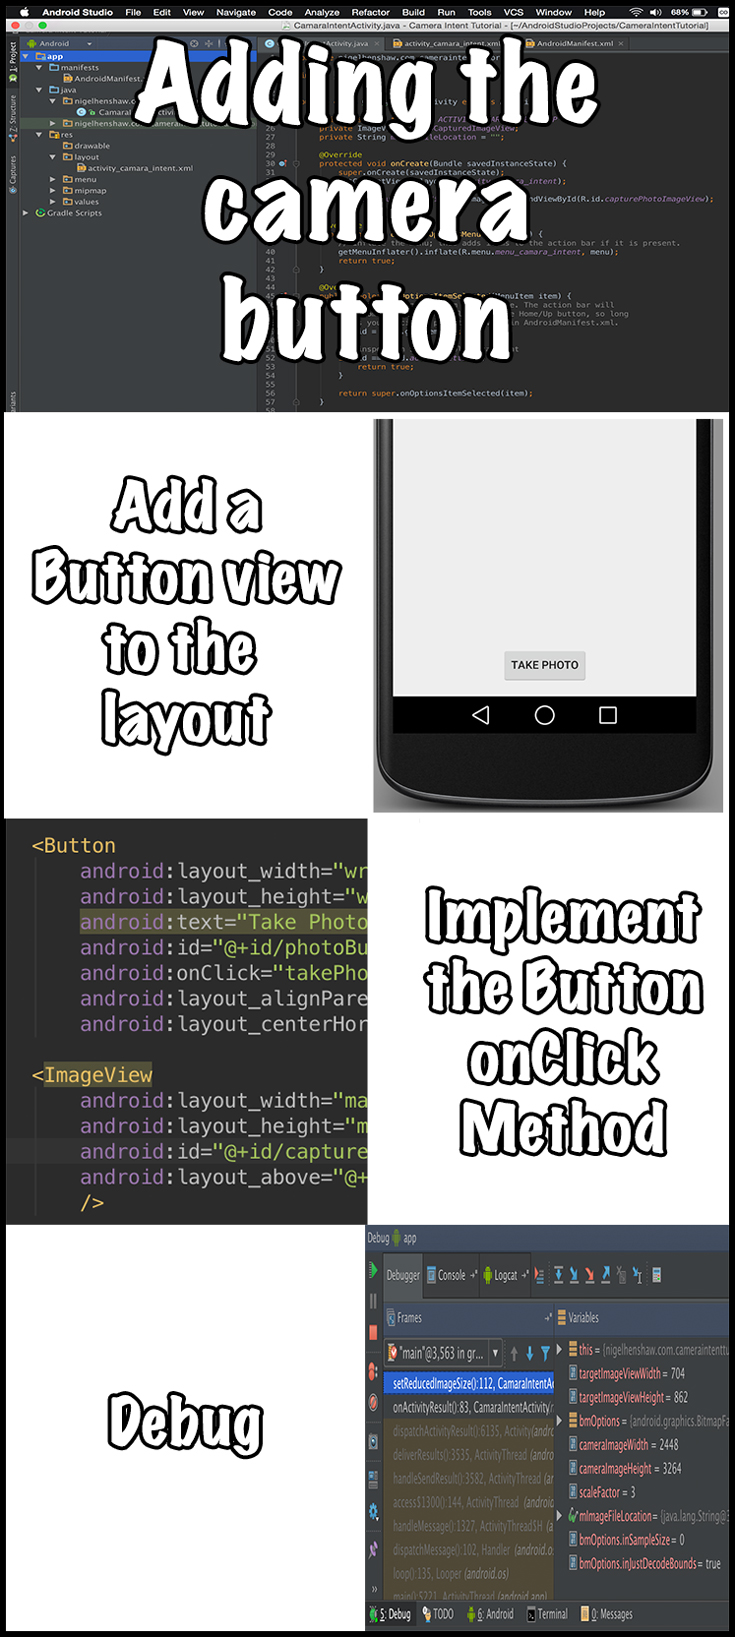 Add camera button Part 2 explains how to replace the standard hello world text view and replaces it with a clickable button view.